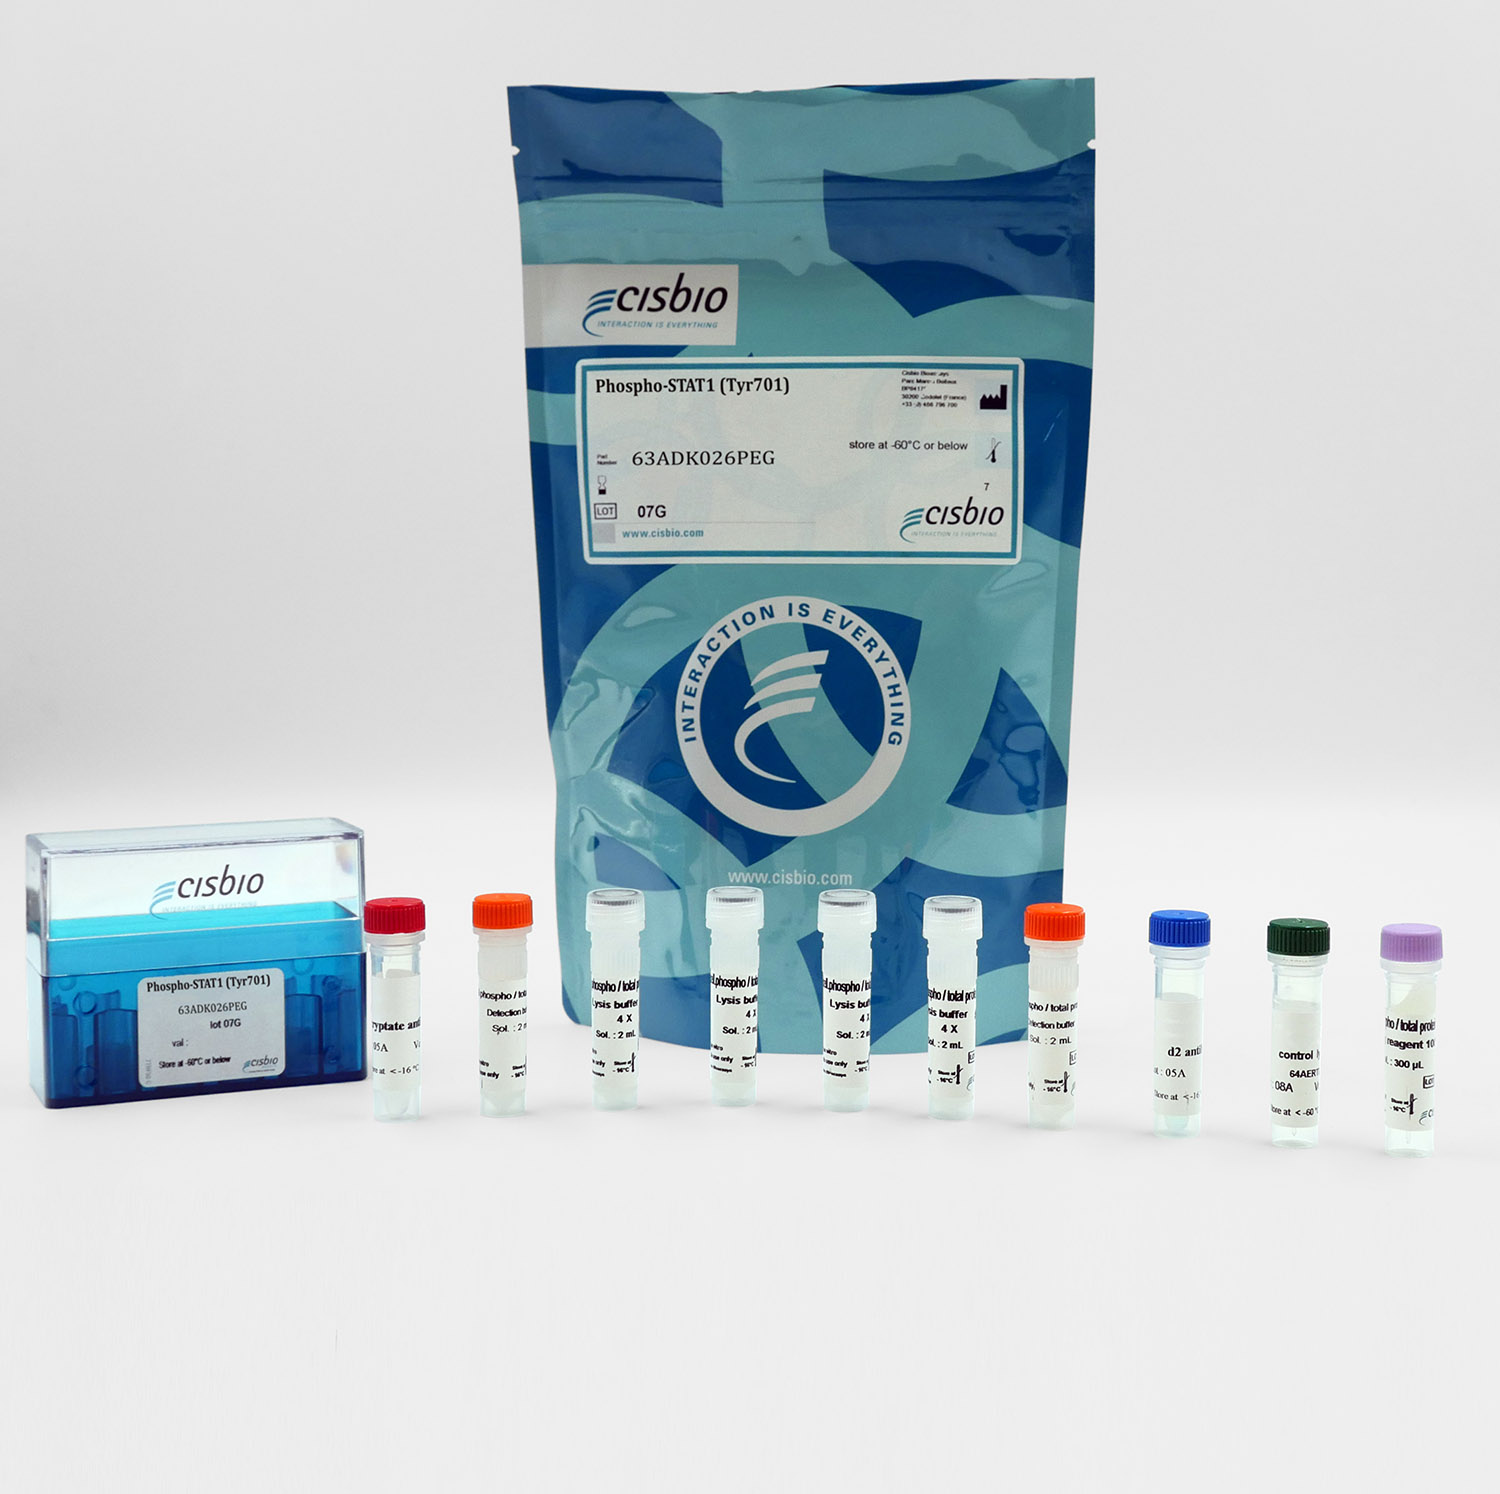 Phospho-STAT1 (Tyr701) cellular kit